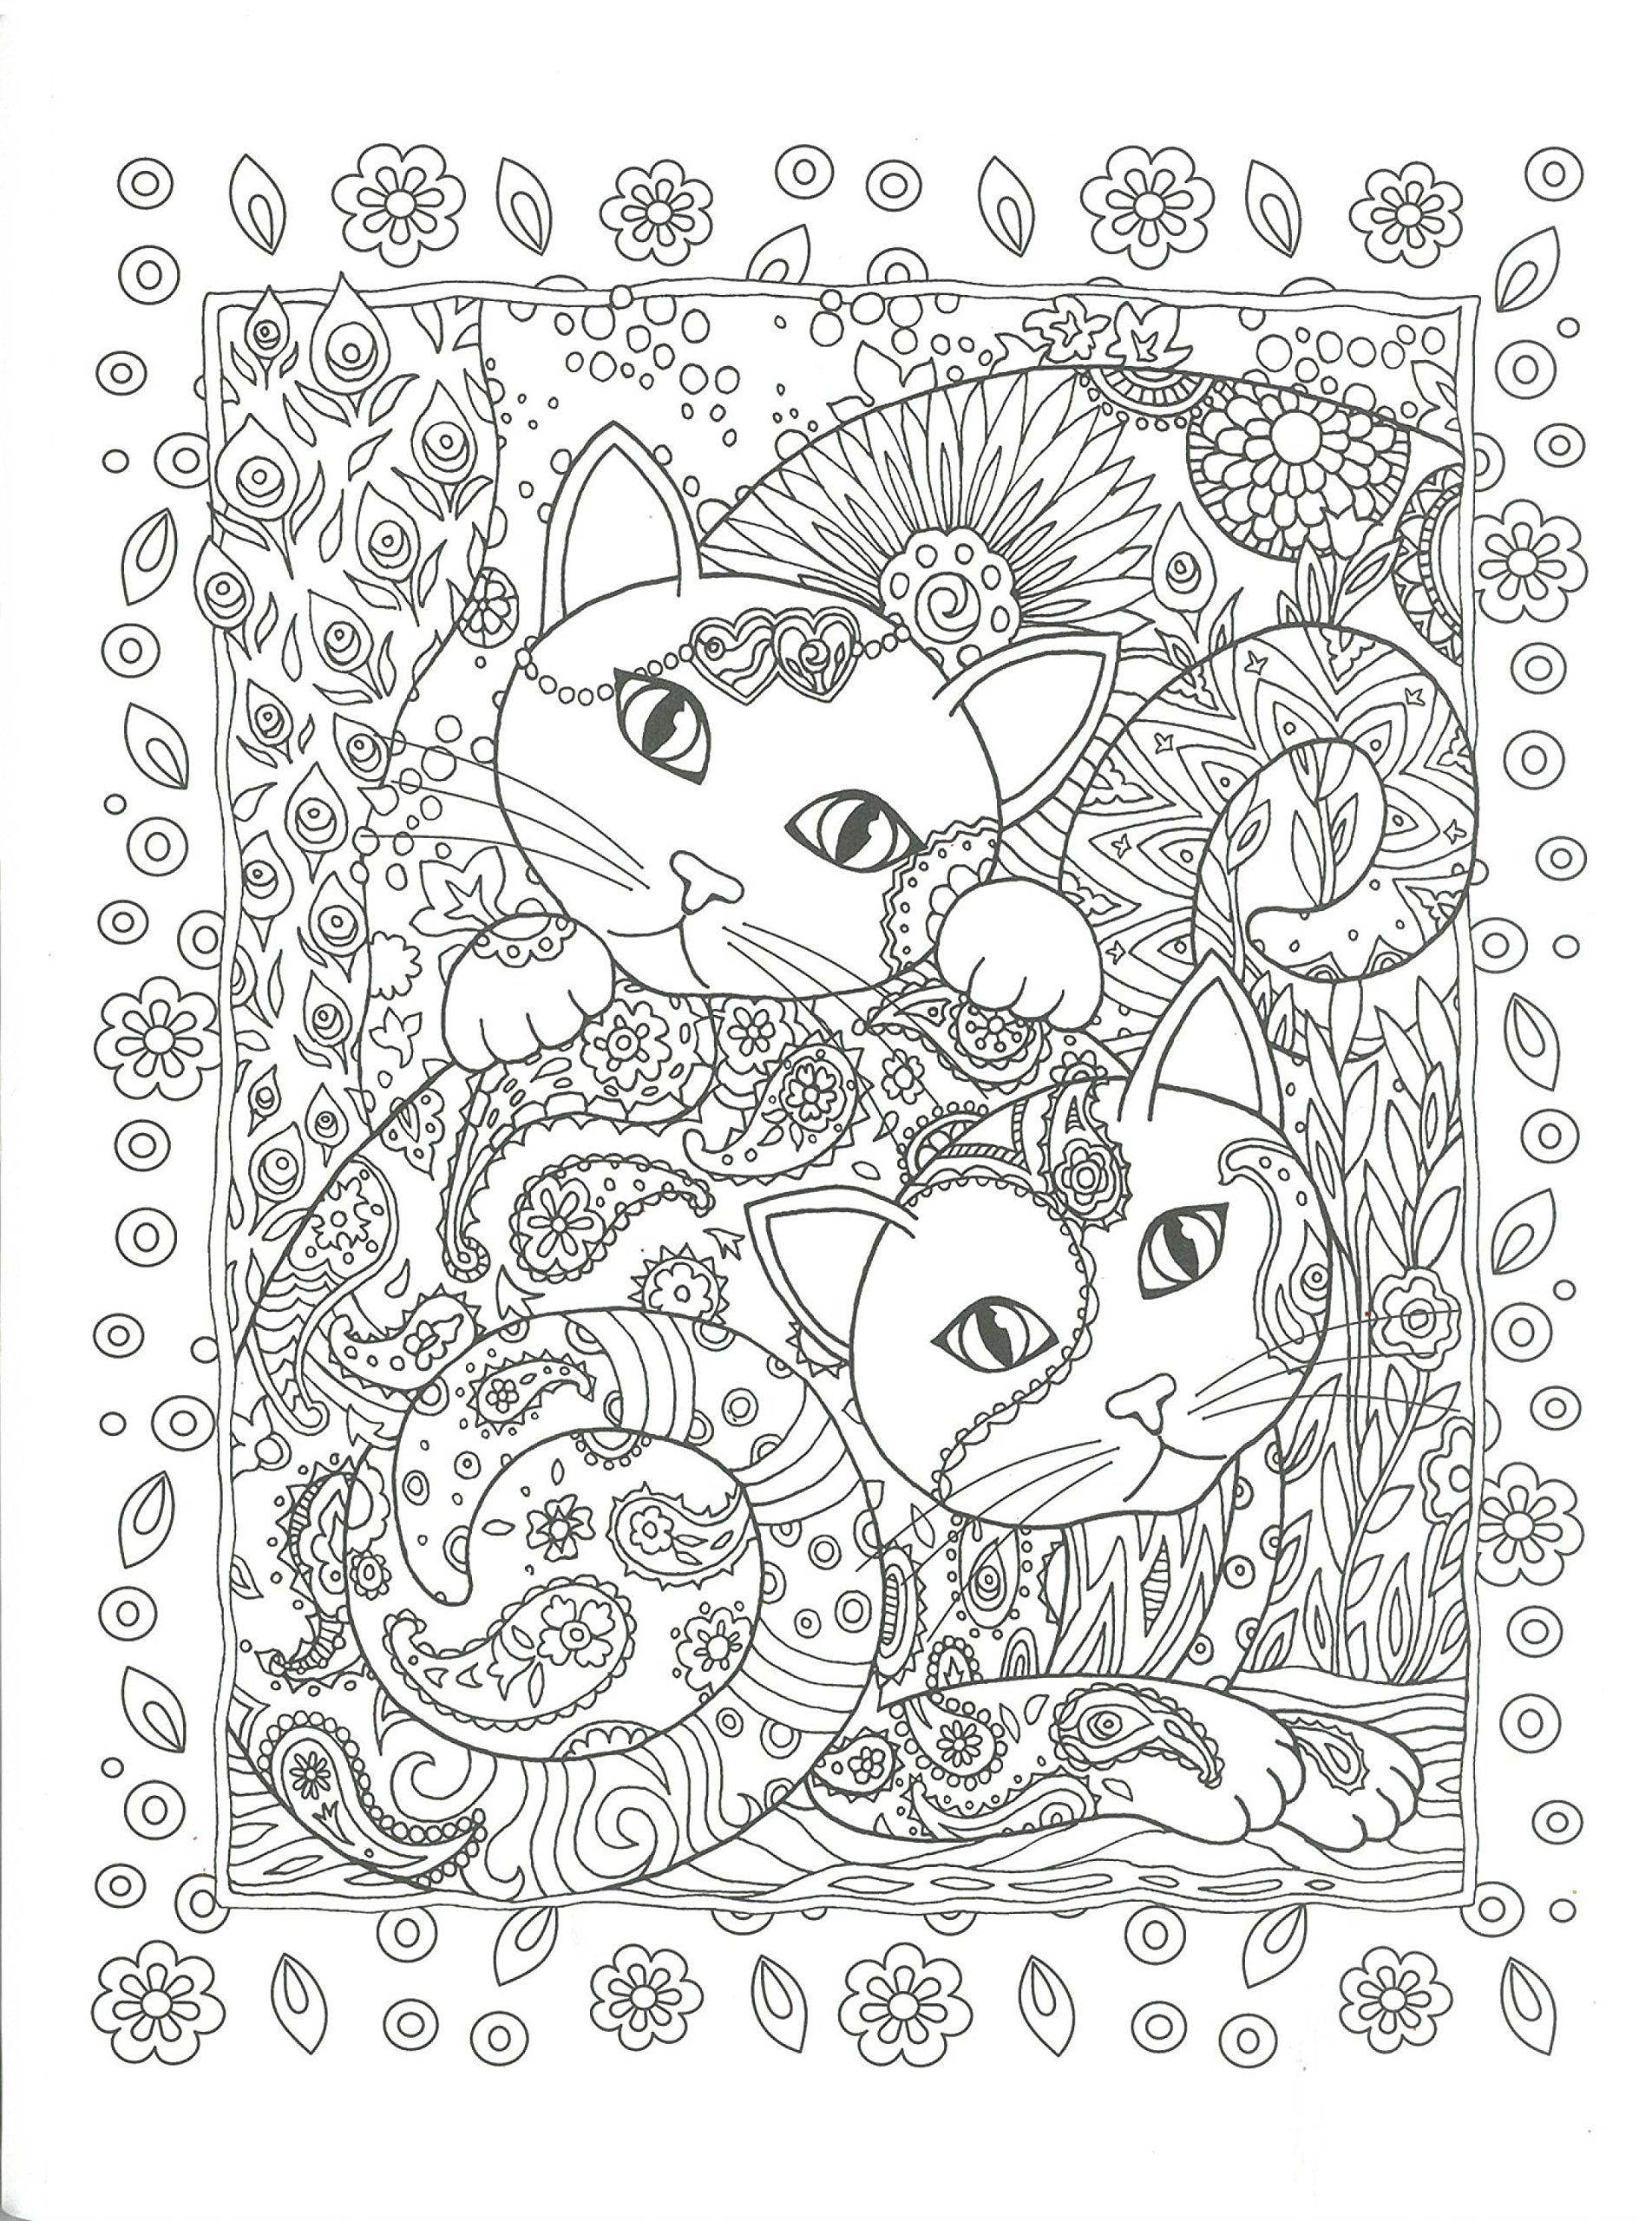 Pin by mama mia on cute coloring book pinterest coloring books